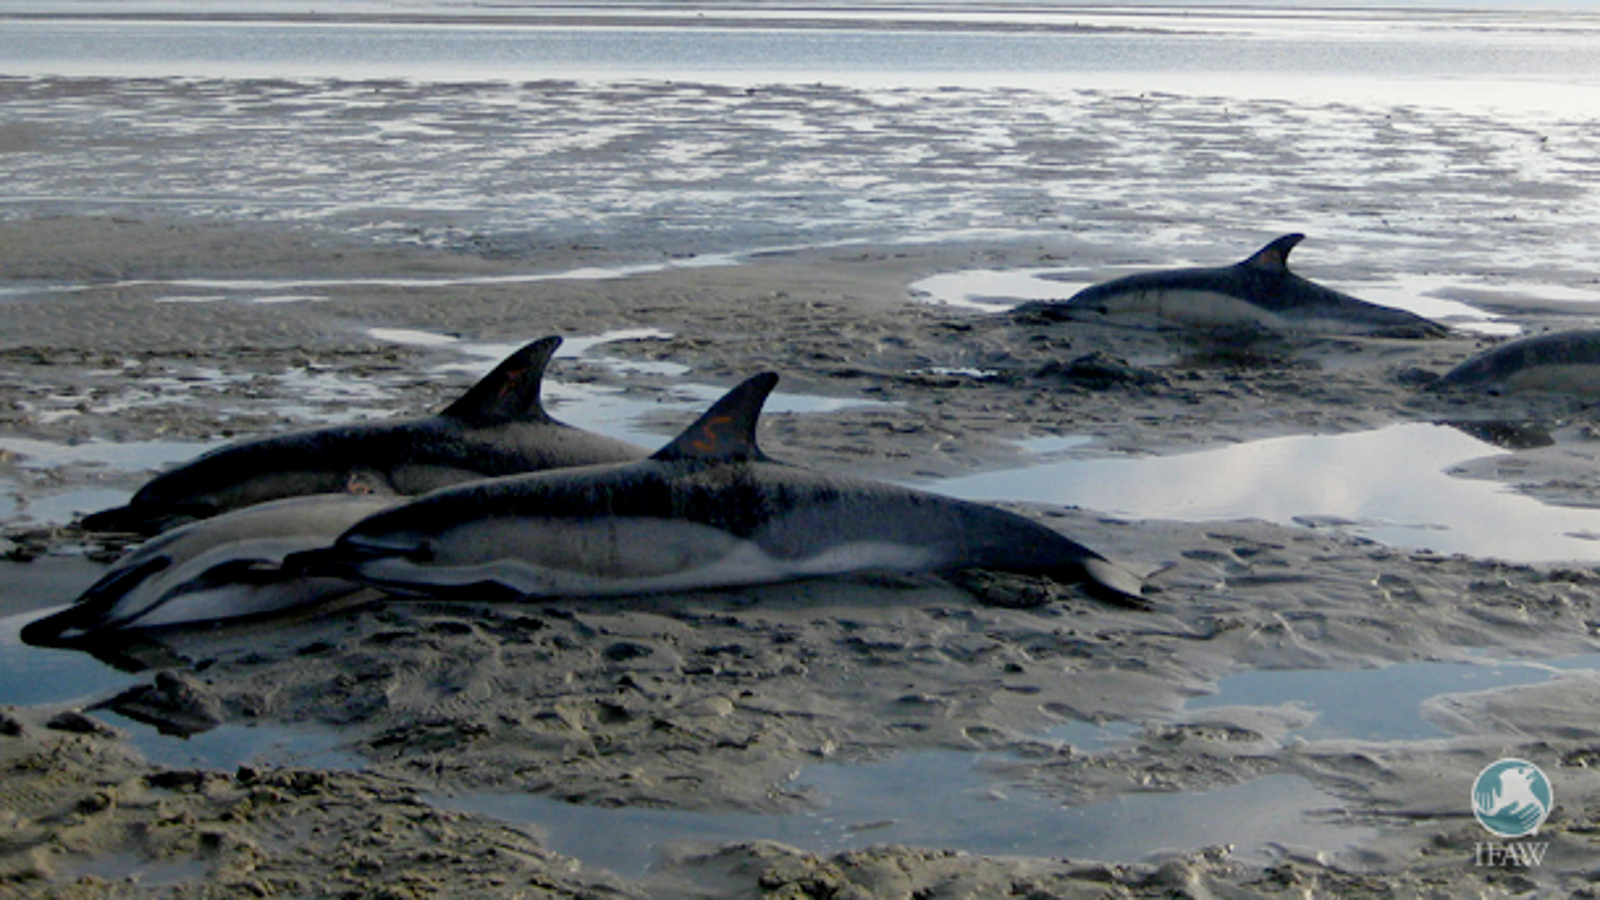 Are You Helping or Harming? What to do if You Encounter a Stranded Dolphin